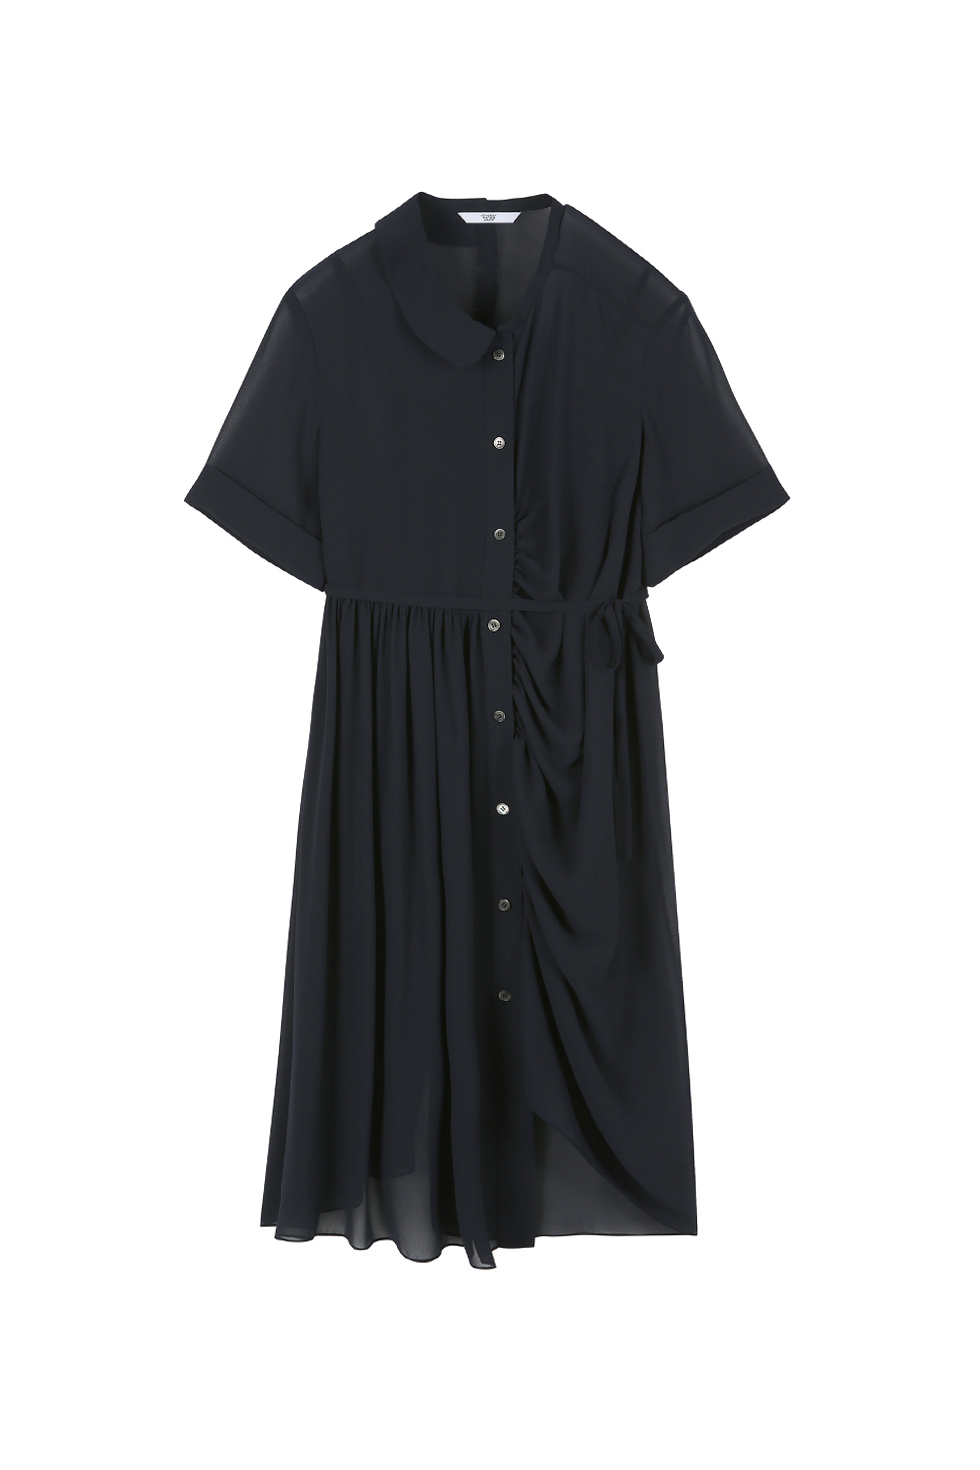 UNBALANCED SHIRTS DRESS - NAVY